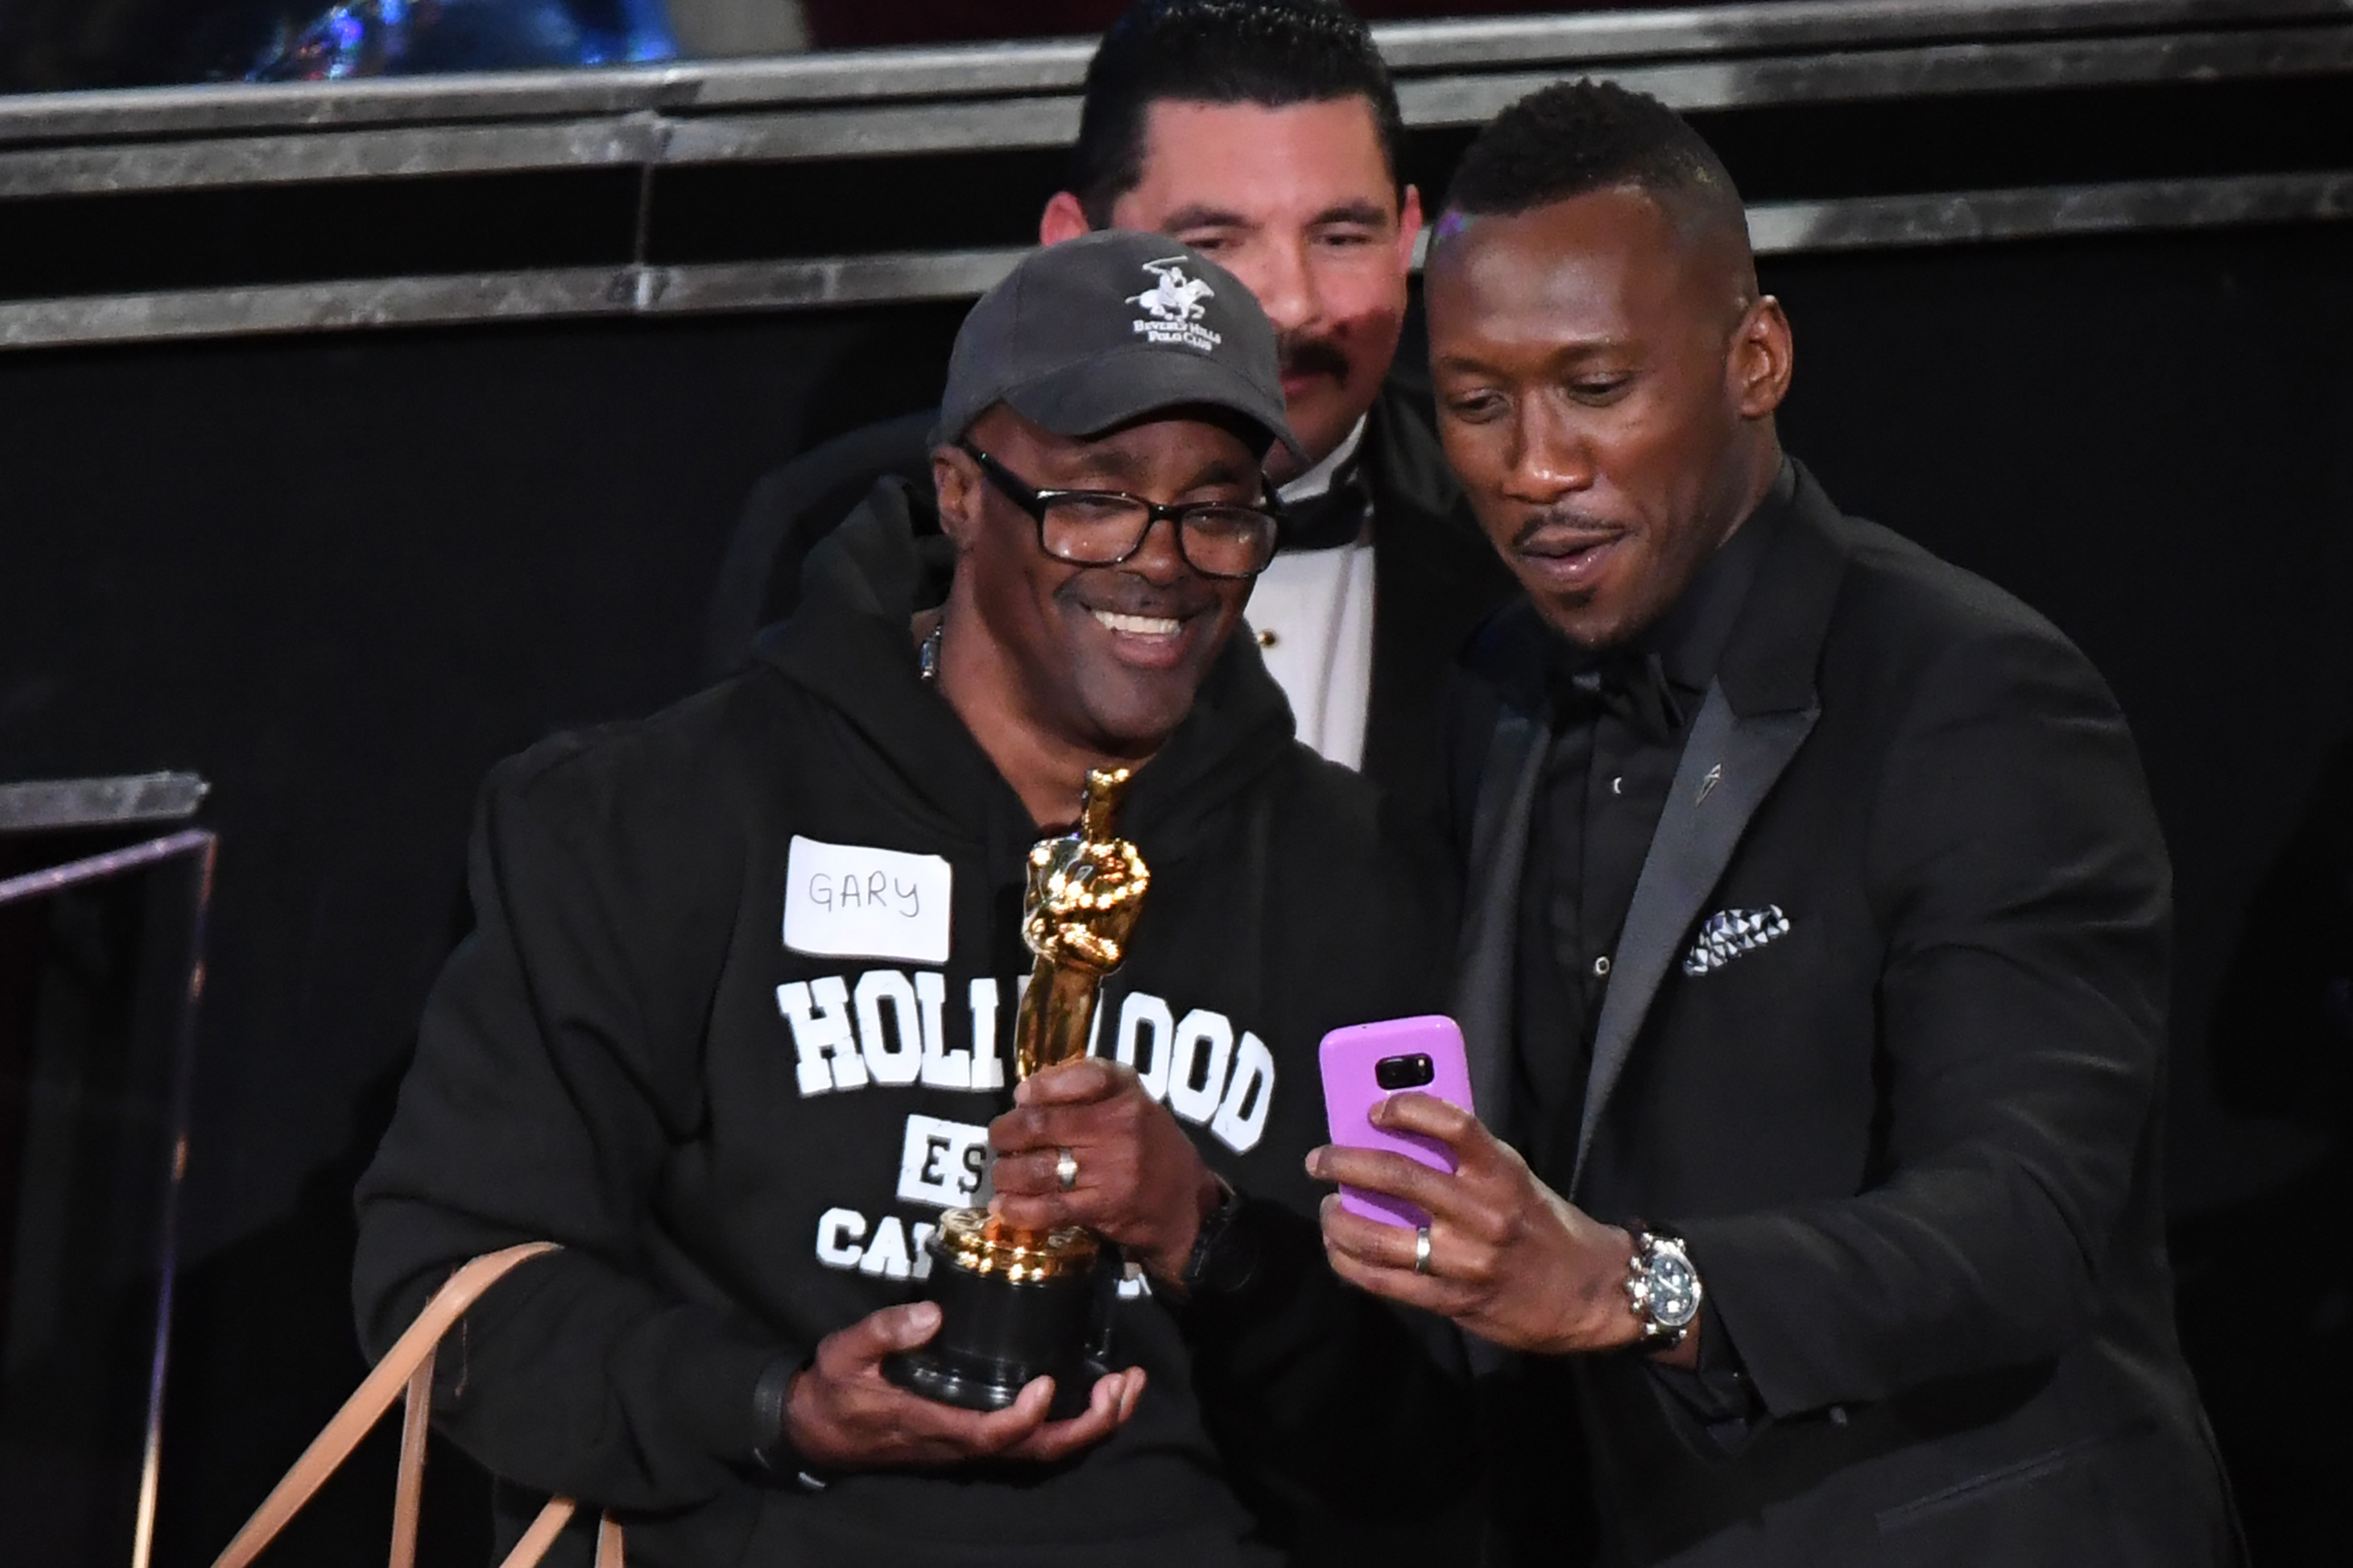 TOPSHOT - A tourist brought into the Oscars as a surprise meets with Best Supporting Actor winner Mahershala Ali at the 89th Oscars on February 26, 2017 in Hollywood, California. / AFP / Mark RALSTON (Photo credit should read MARK RALSTON/AFP/Getty Images)